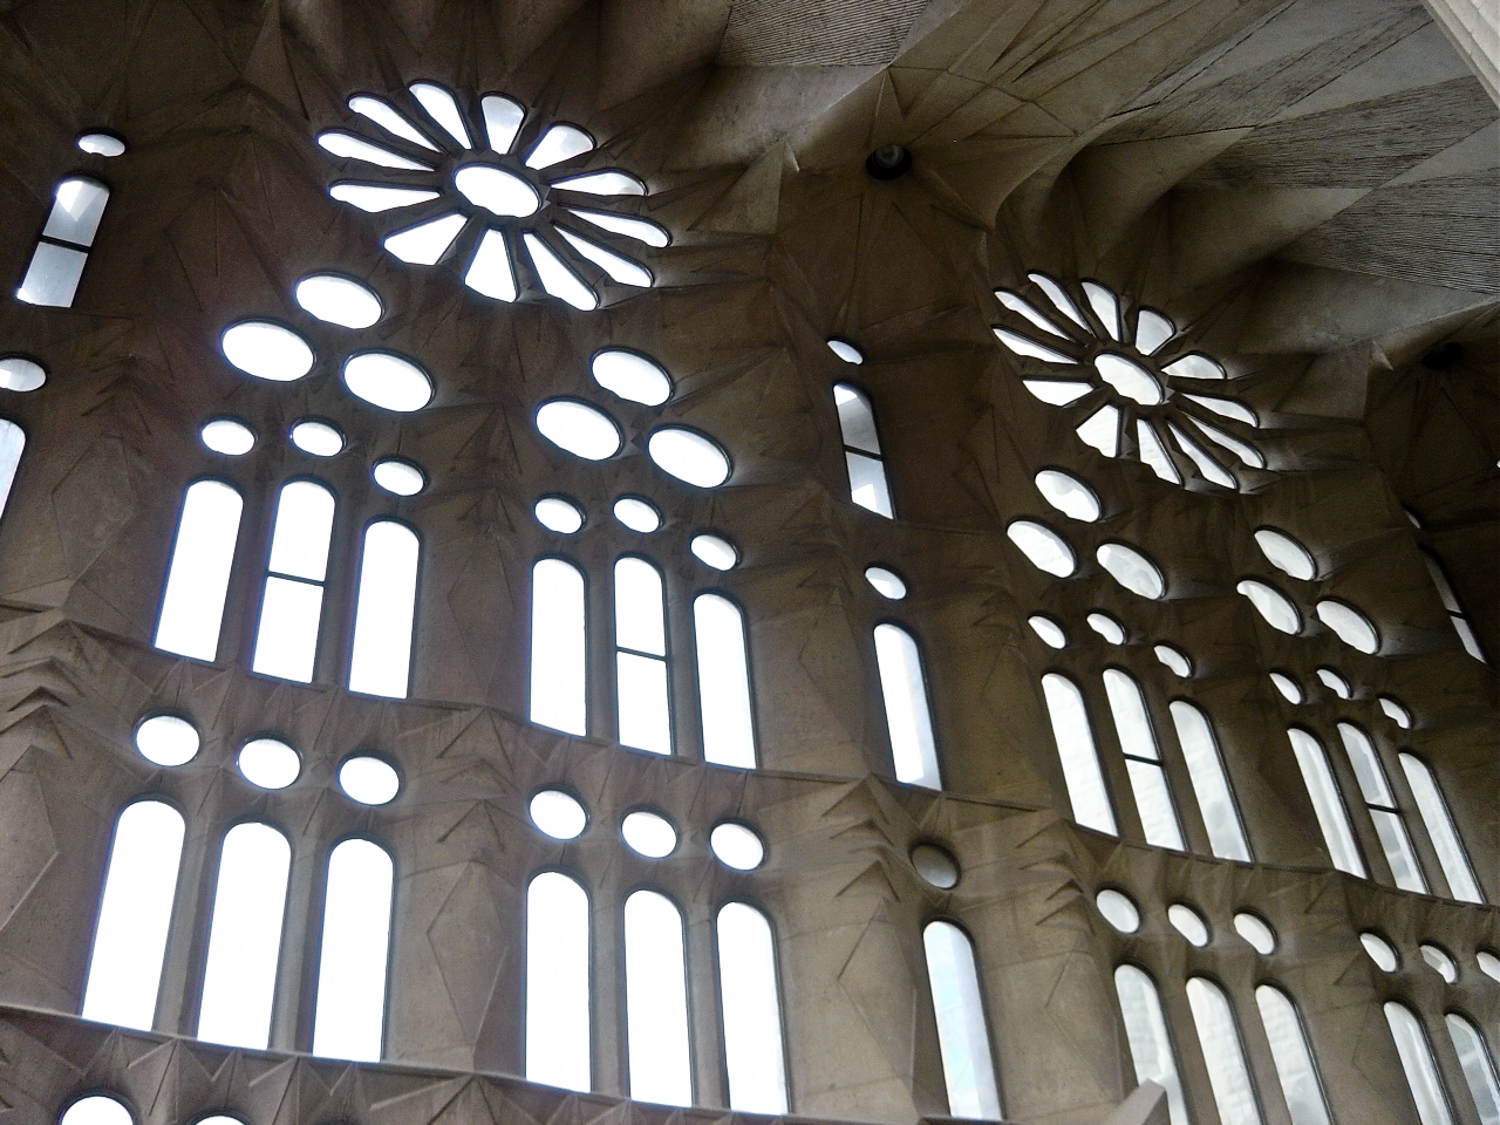 2005: windows sans stained glass